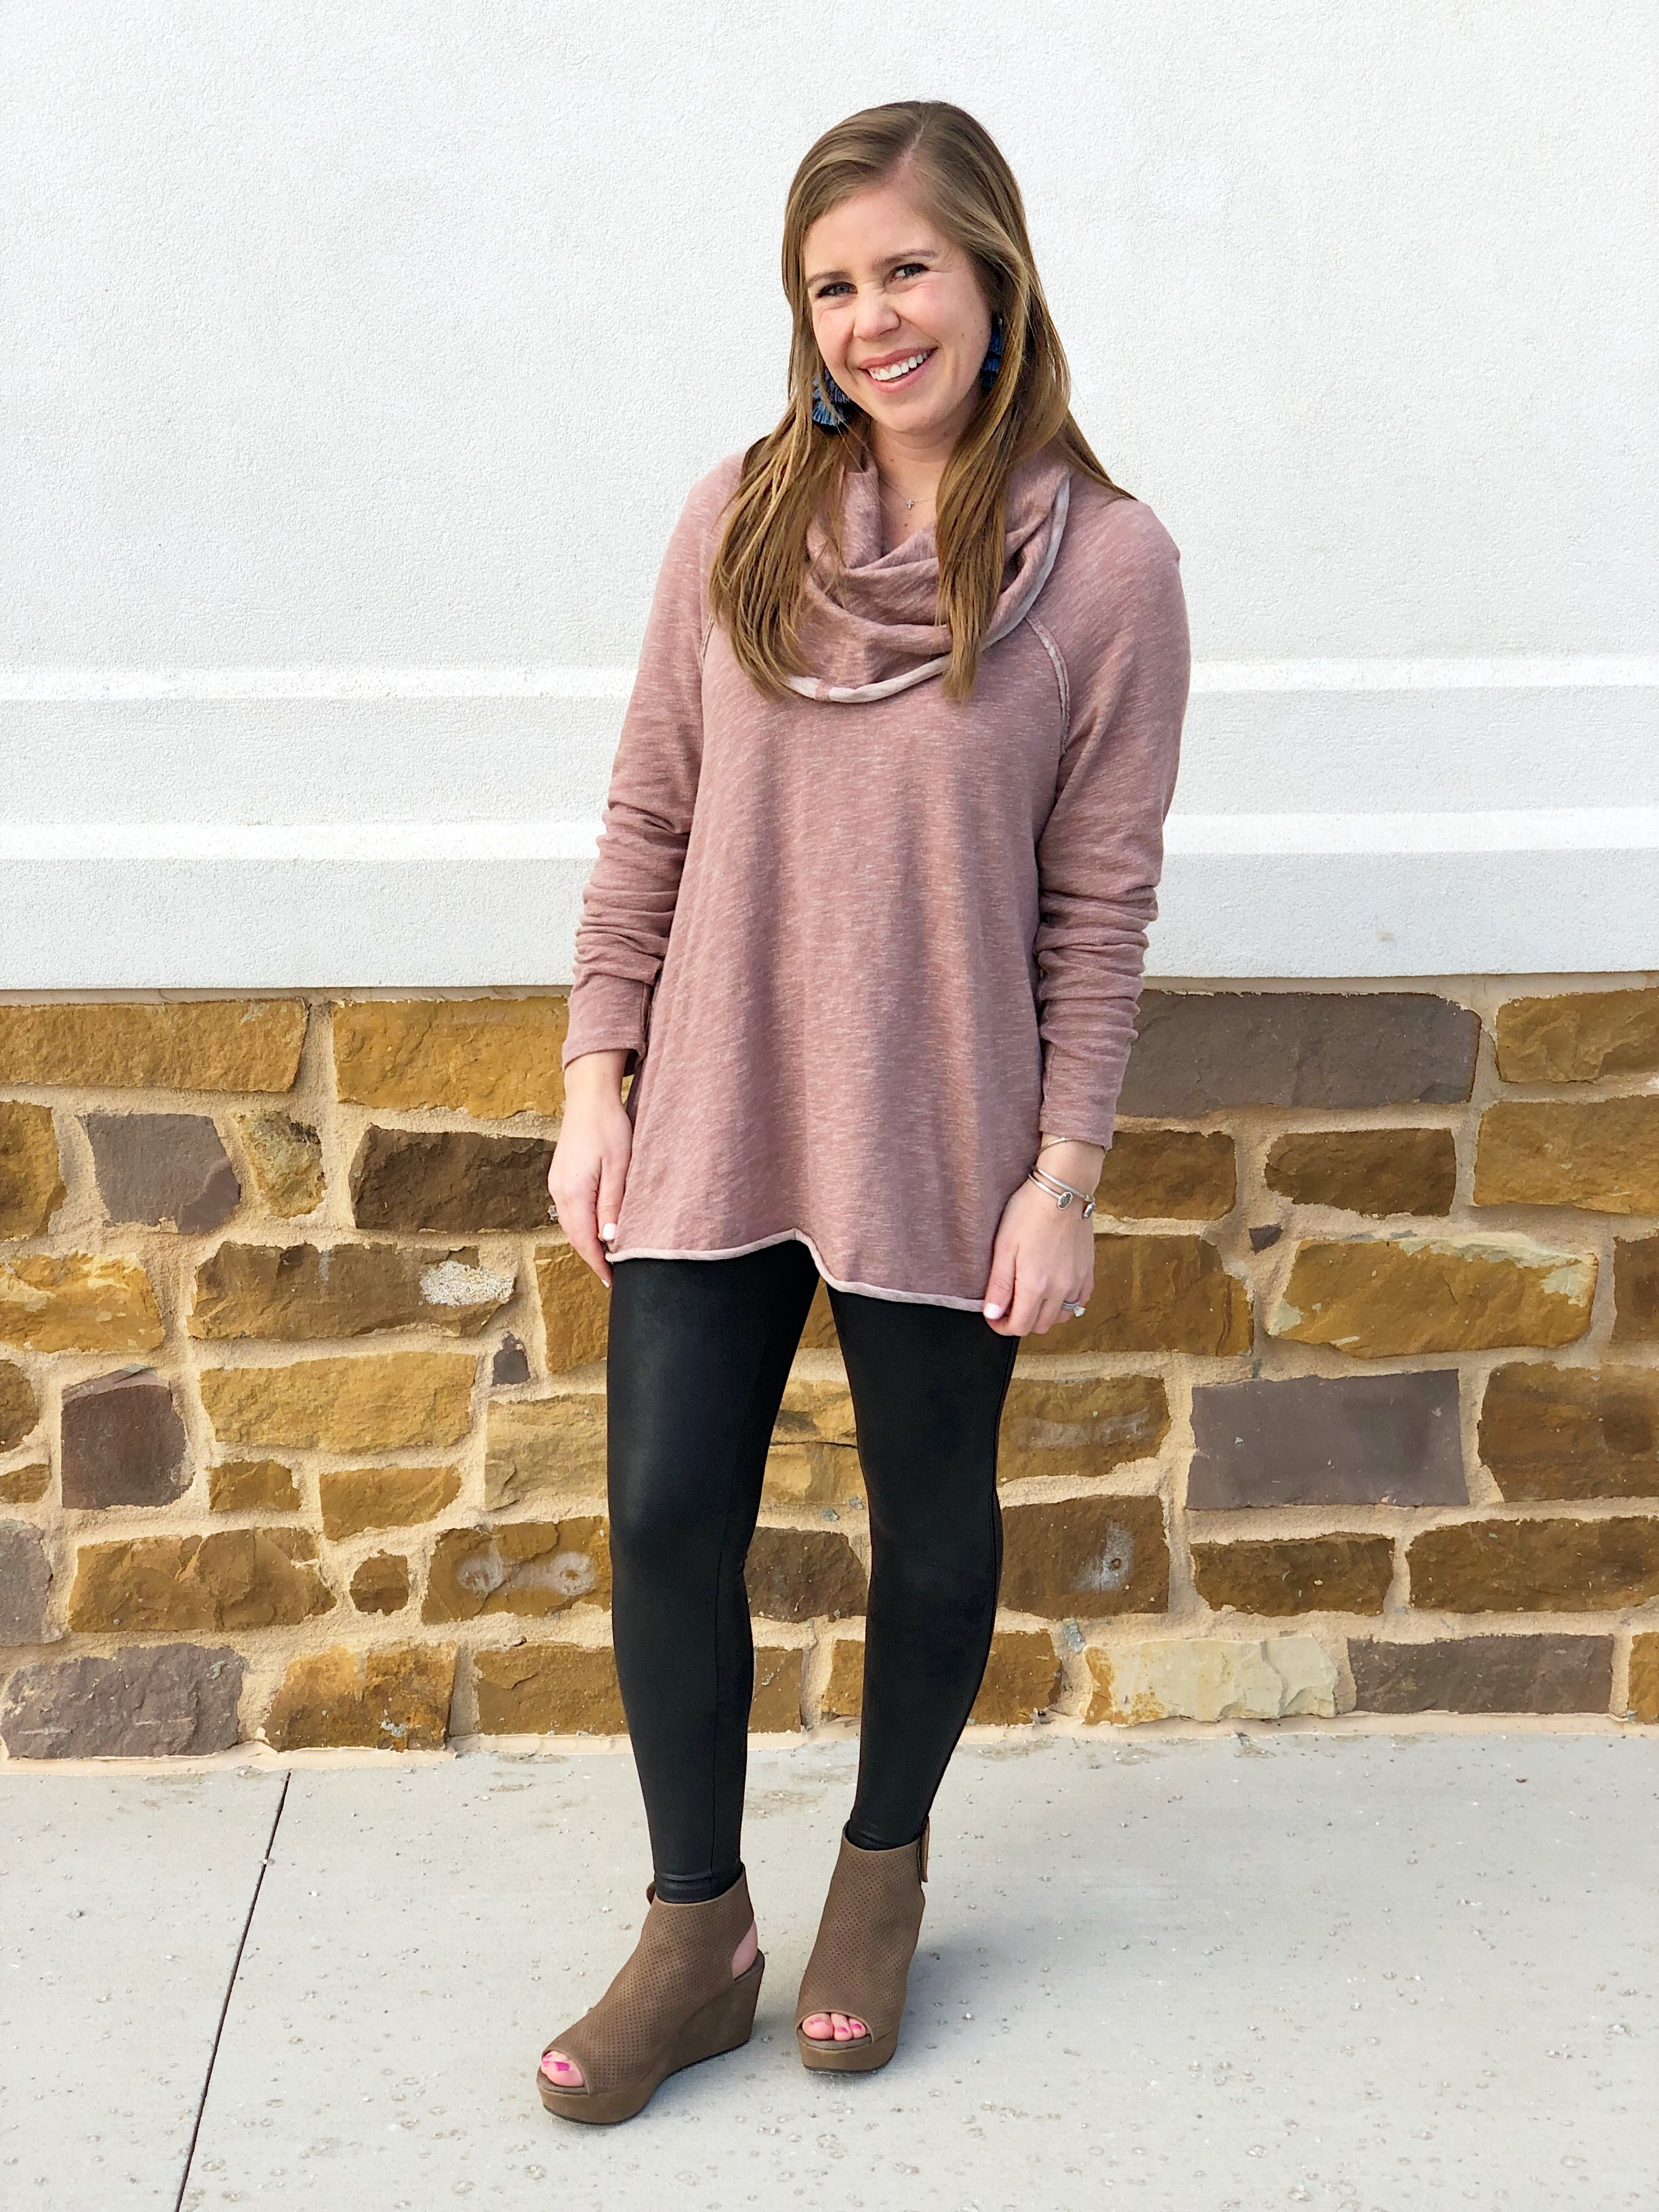 Free People Cowl Neck Sweater  //  Faux Leather Leggings  //  Shoes